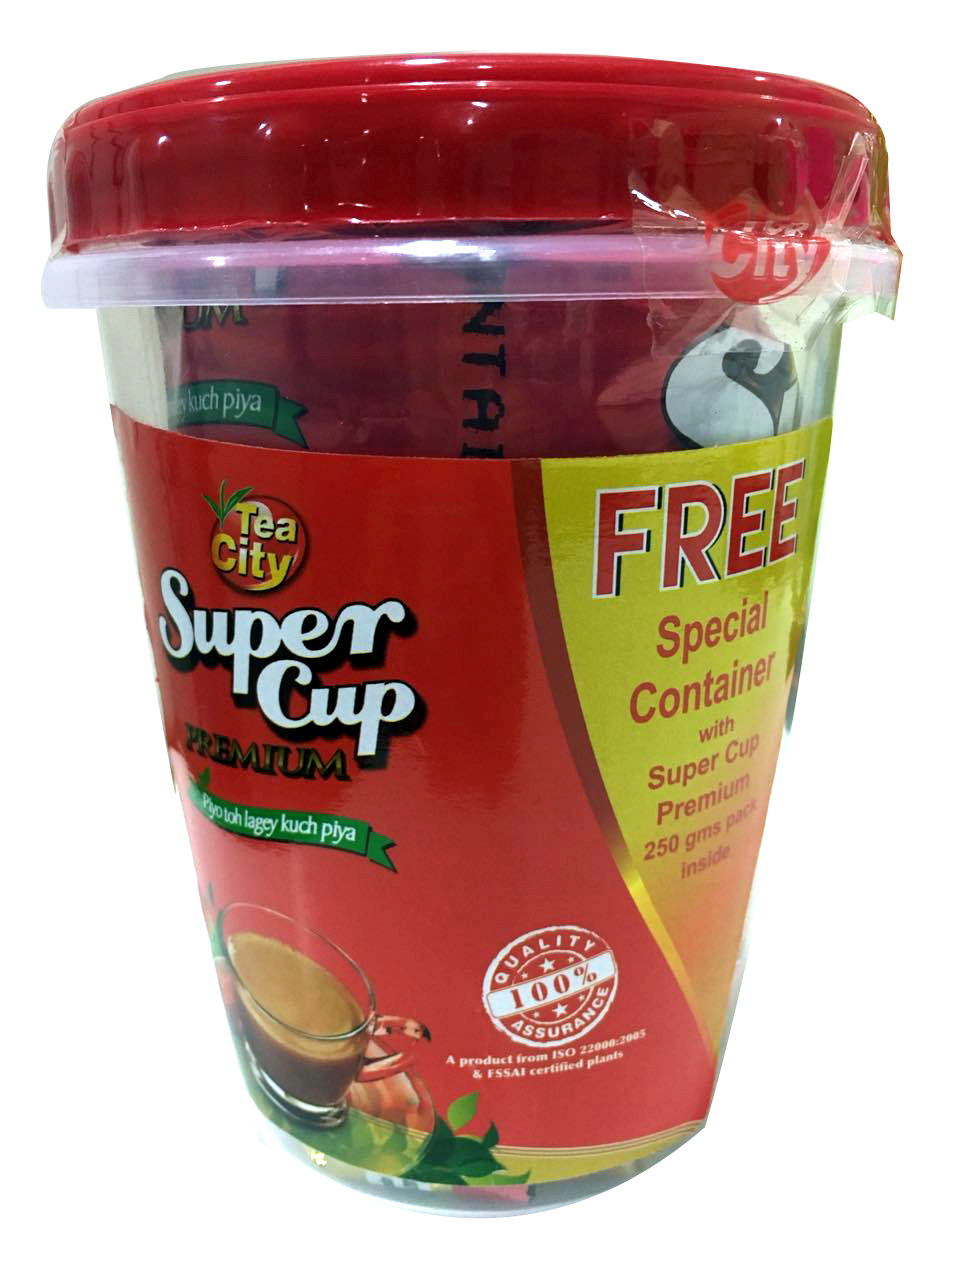 CTC Black Tea - Super Cup Premium Leaf Tea Container (250 Grams)